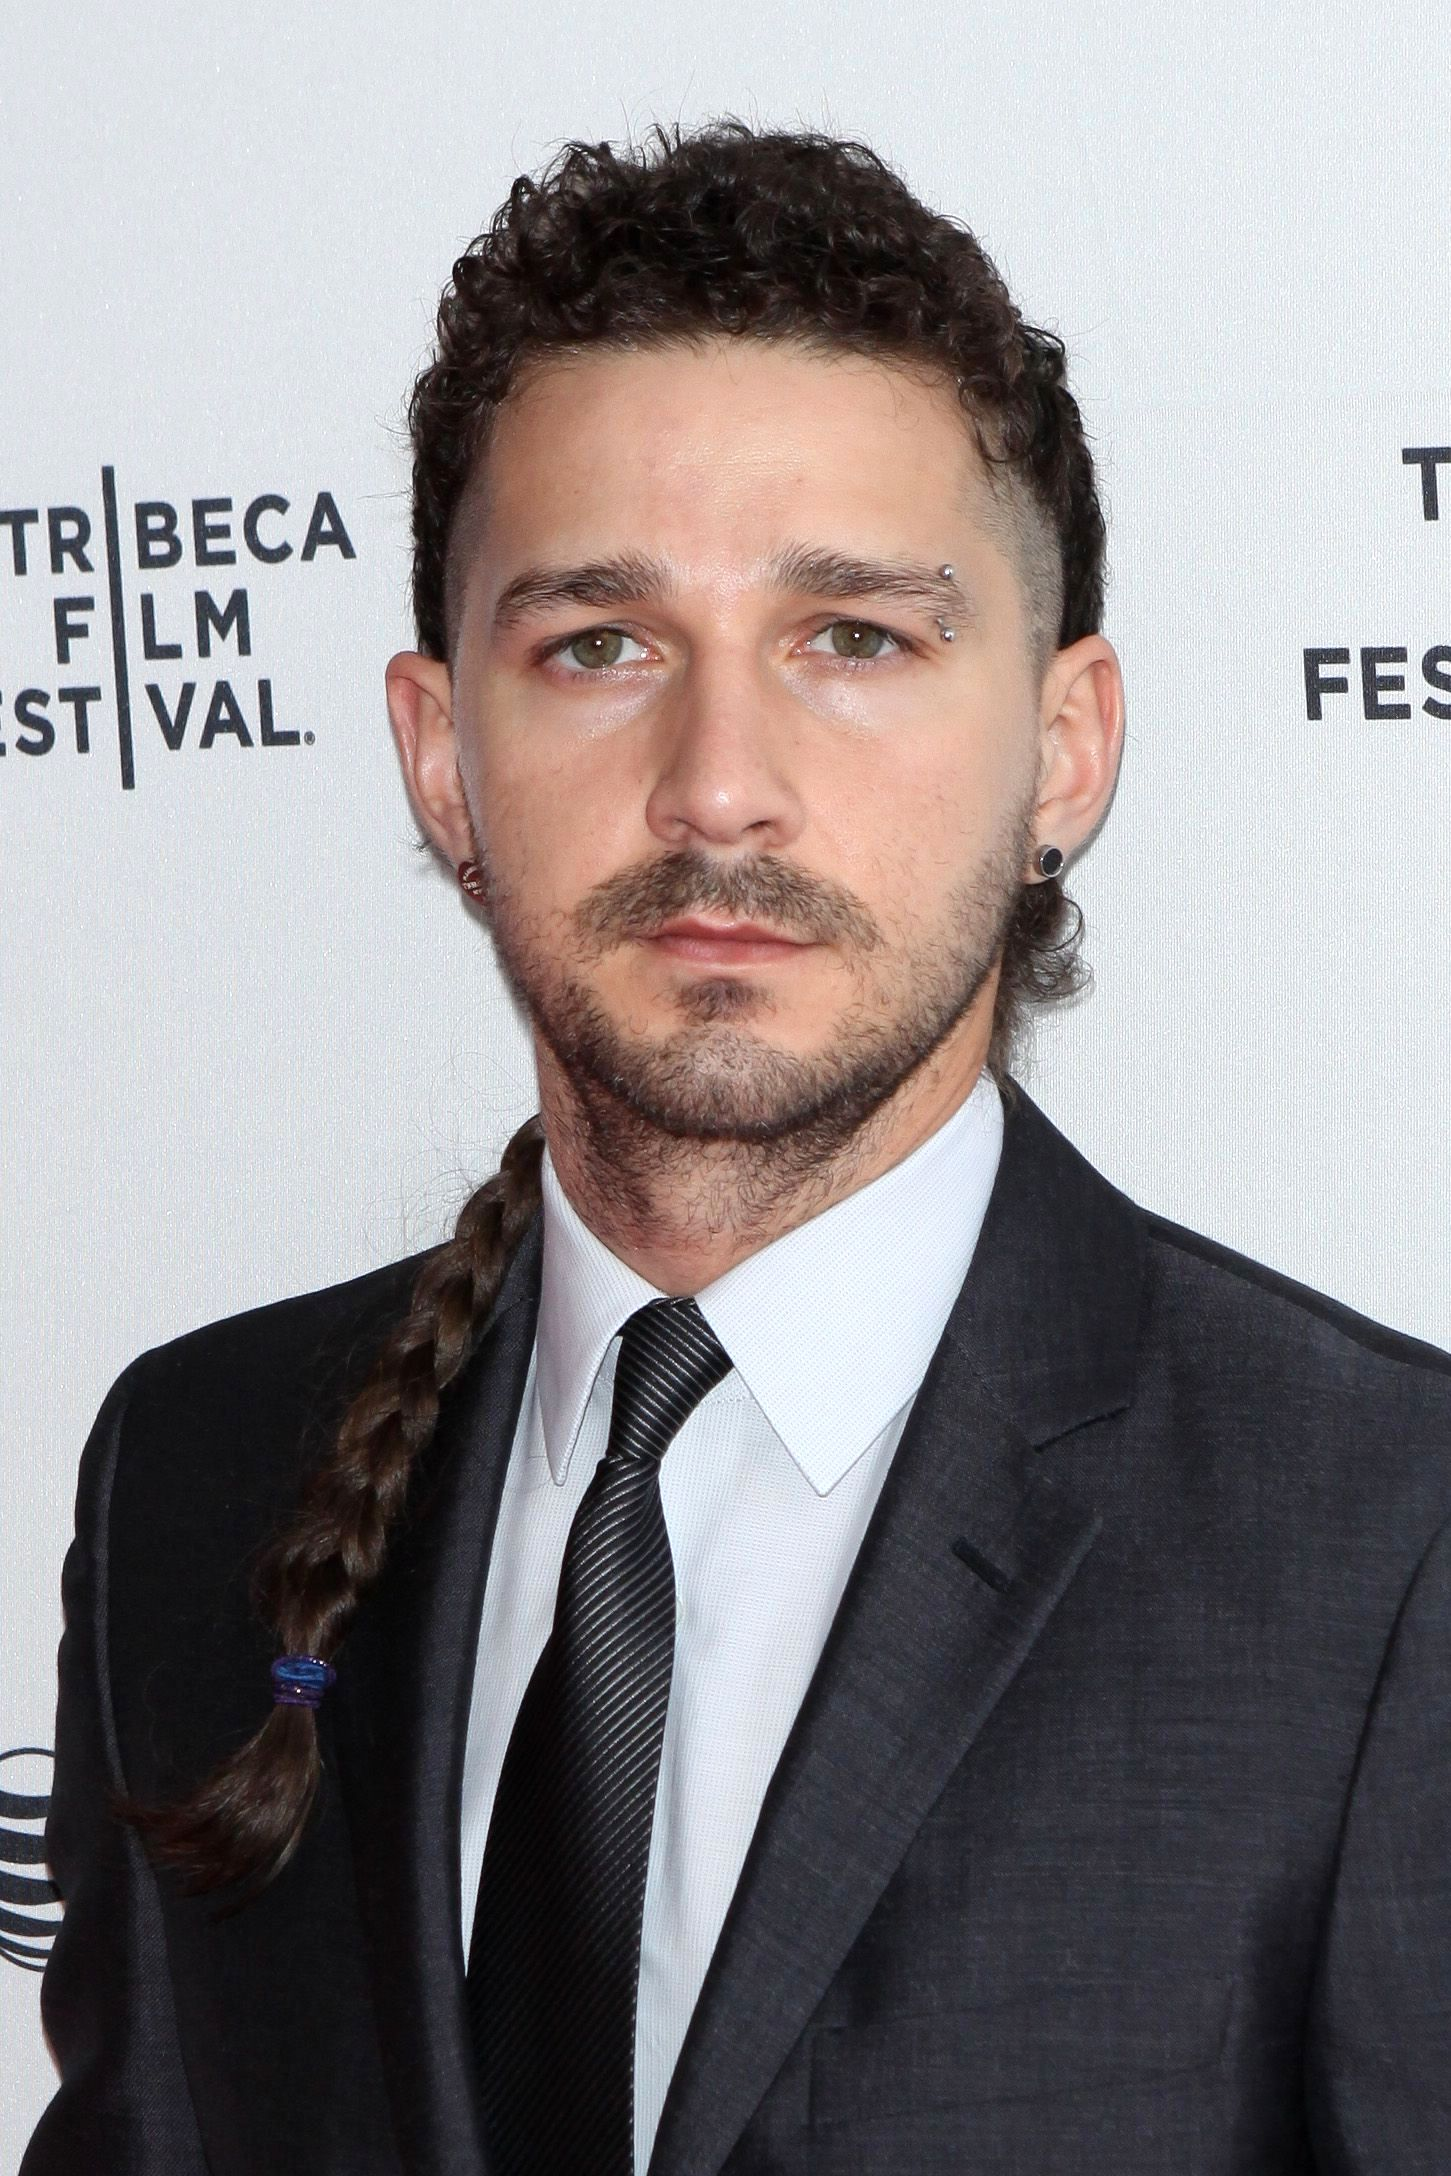 men with braids: All Things Hair - IMAGE - Shia LaBeouf side braid long hair